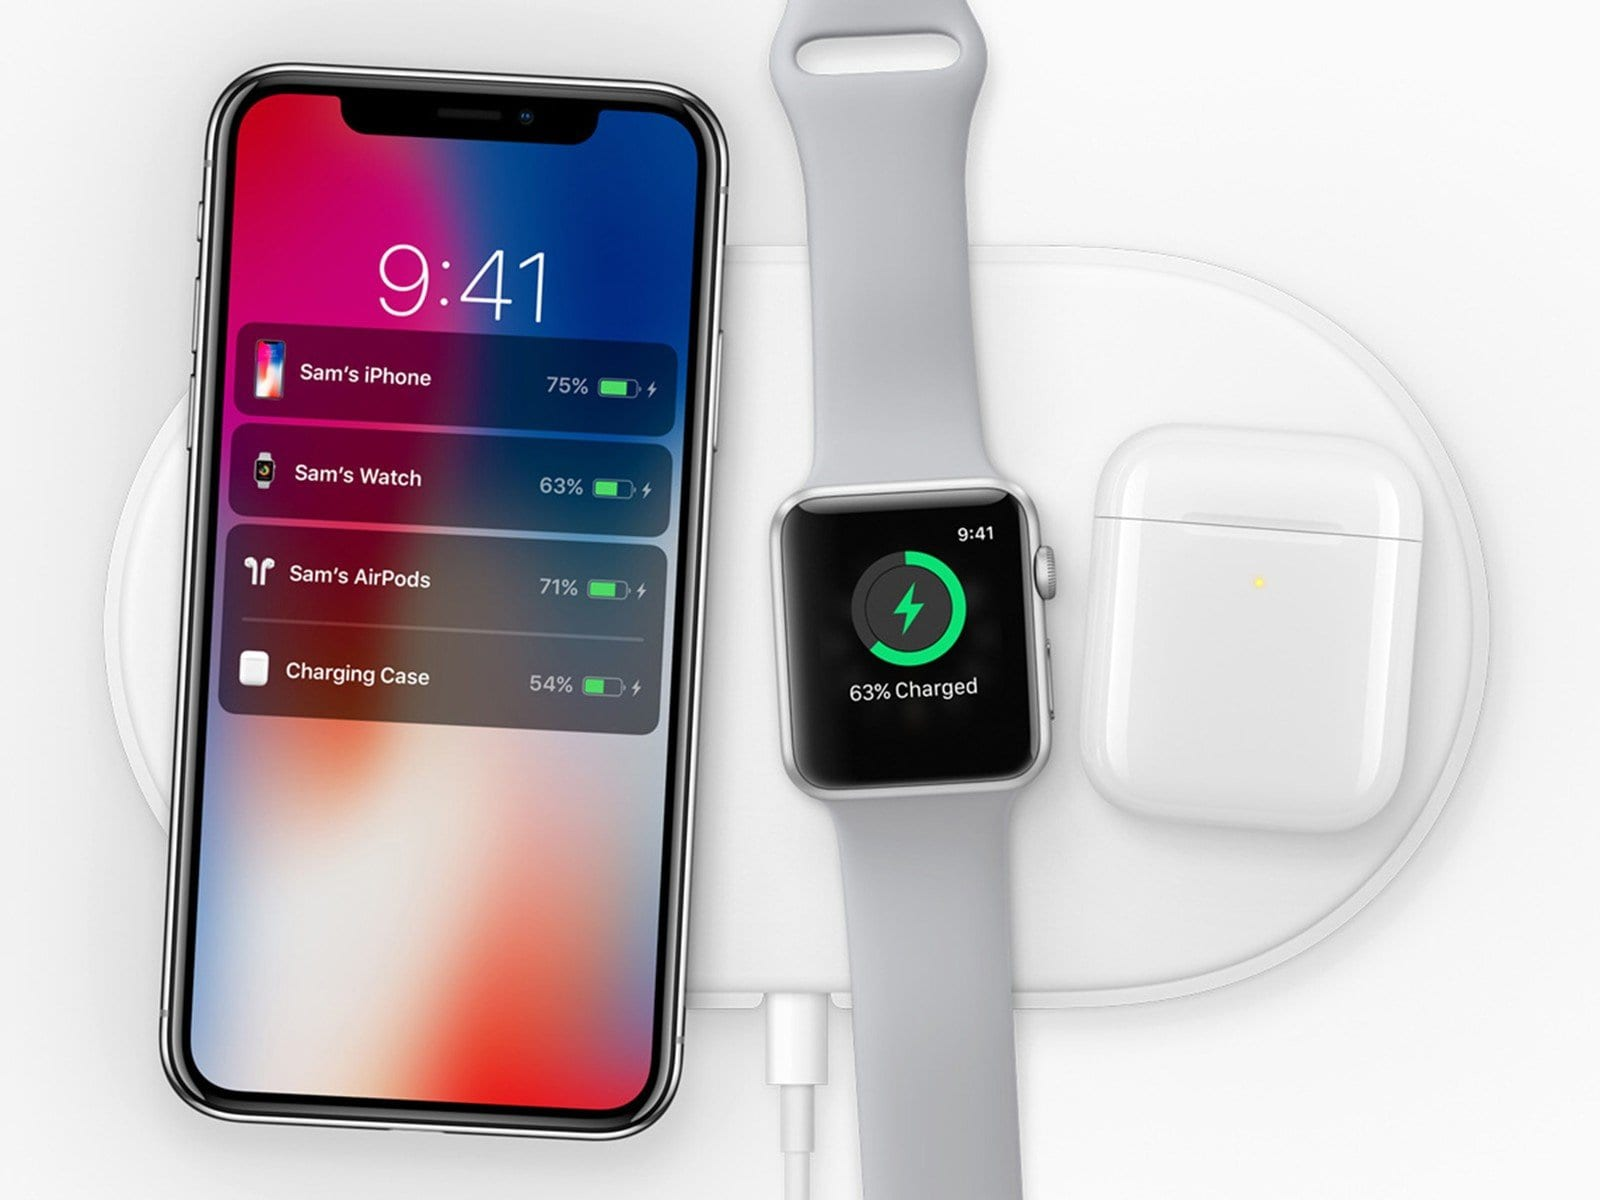 Airpower delay